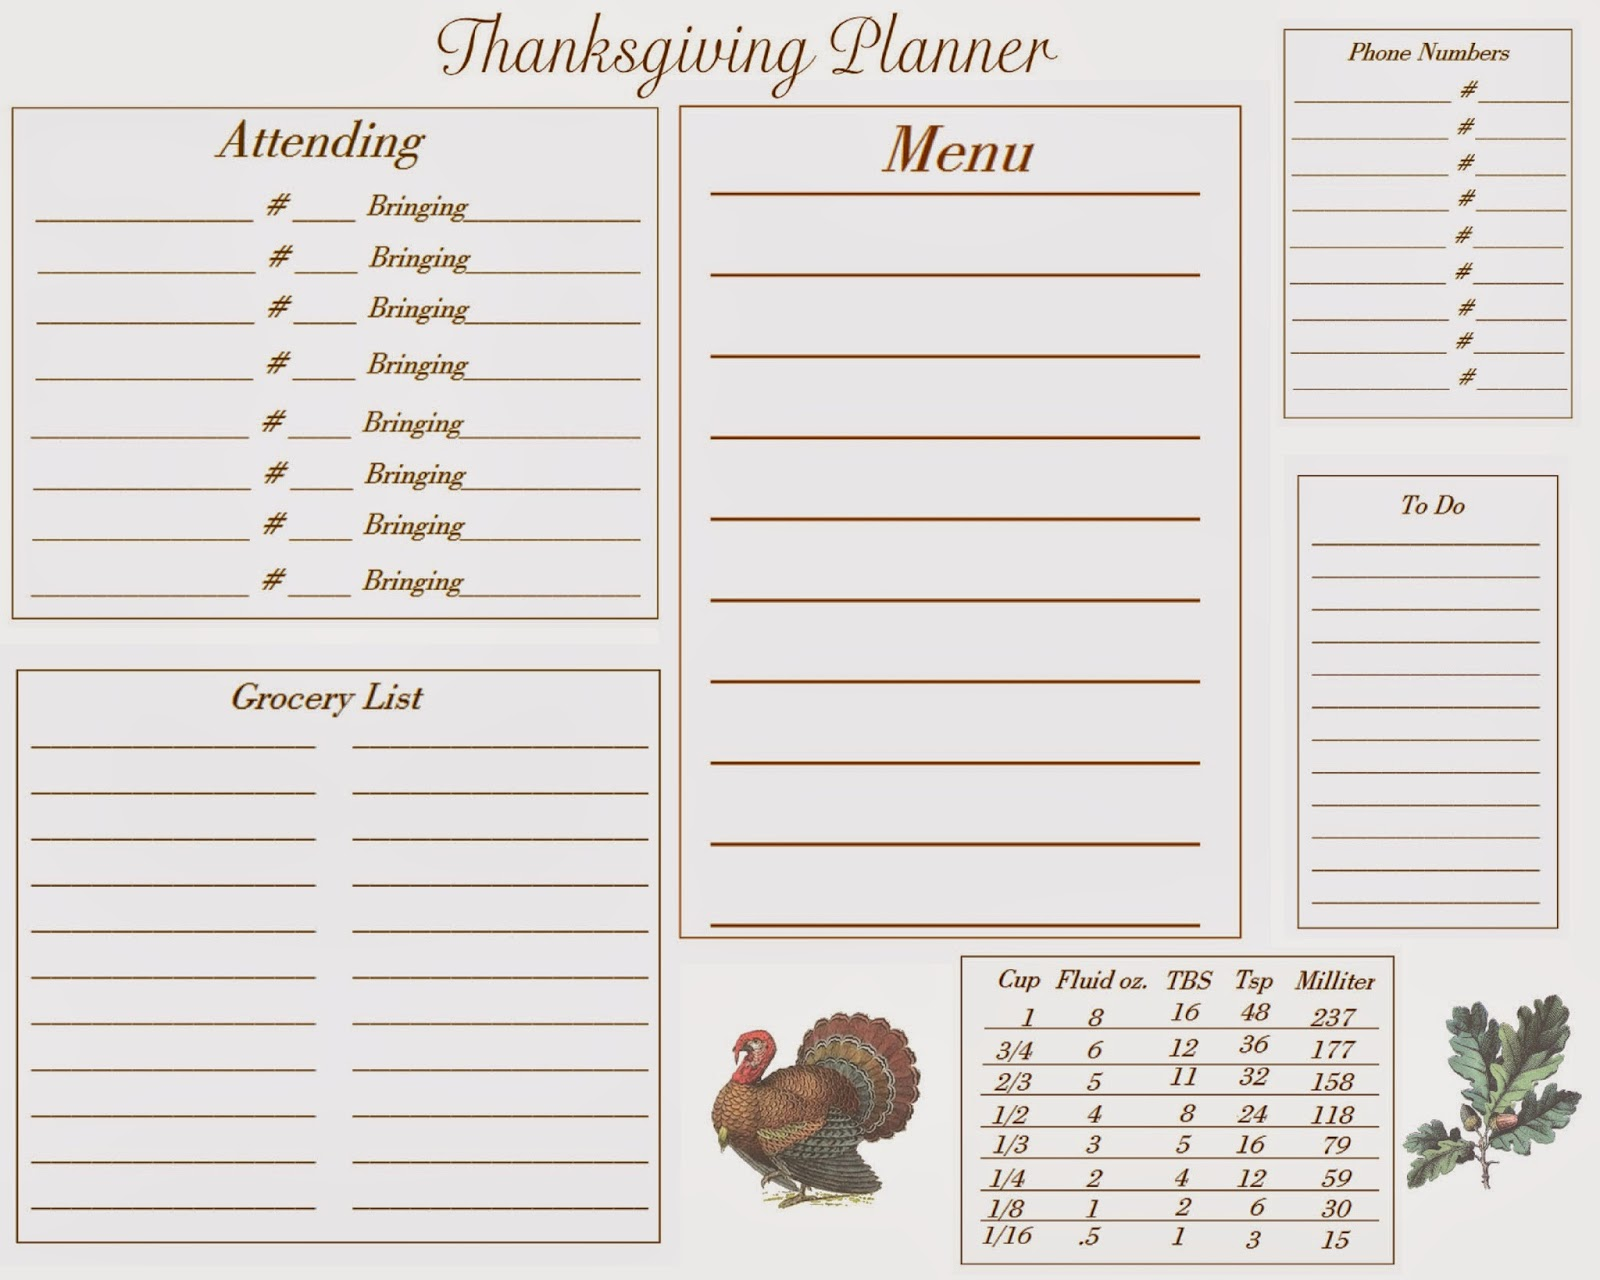 This meal planner is based on the USDA food guidelines and was was developed by our registered dietitian. If you are unsure how much calories your child needs, please visit our meal planning page or try our the meal planner tool. This meal plan is for children nine years of age and older.